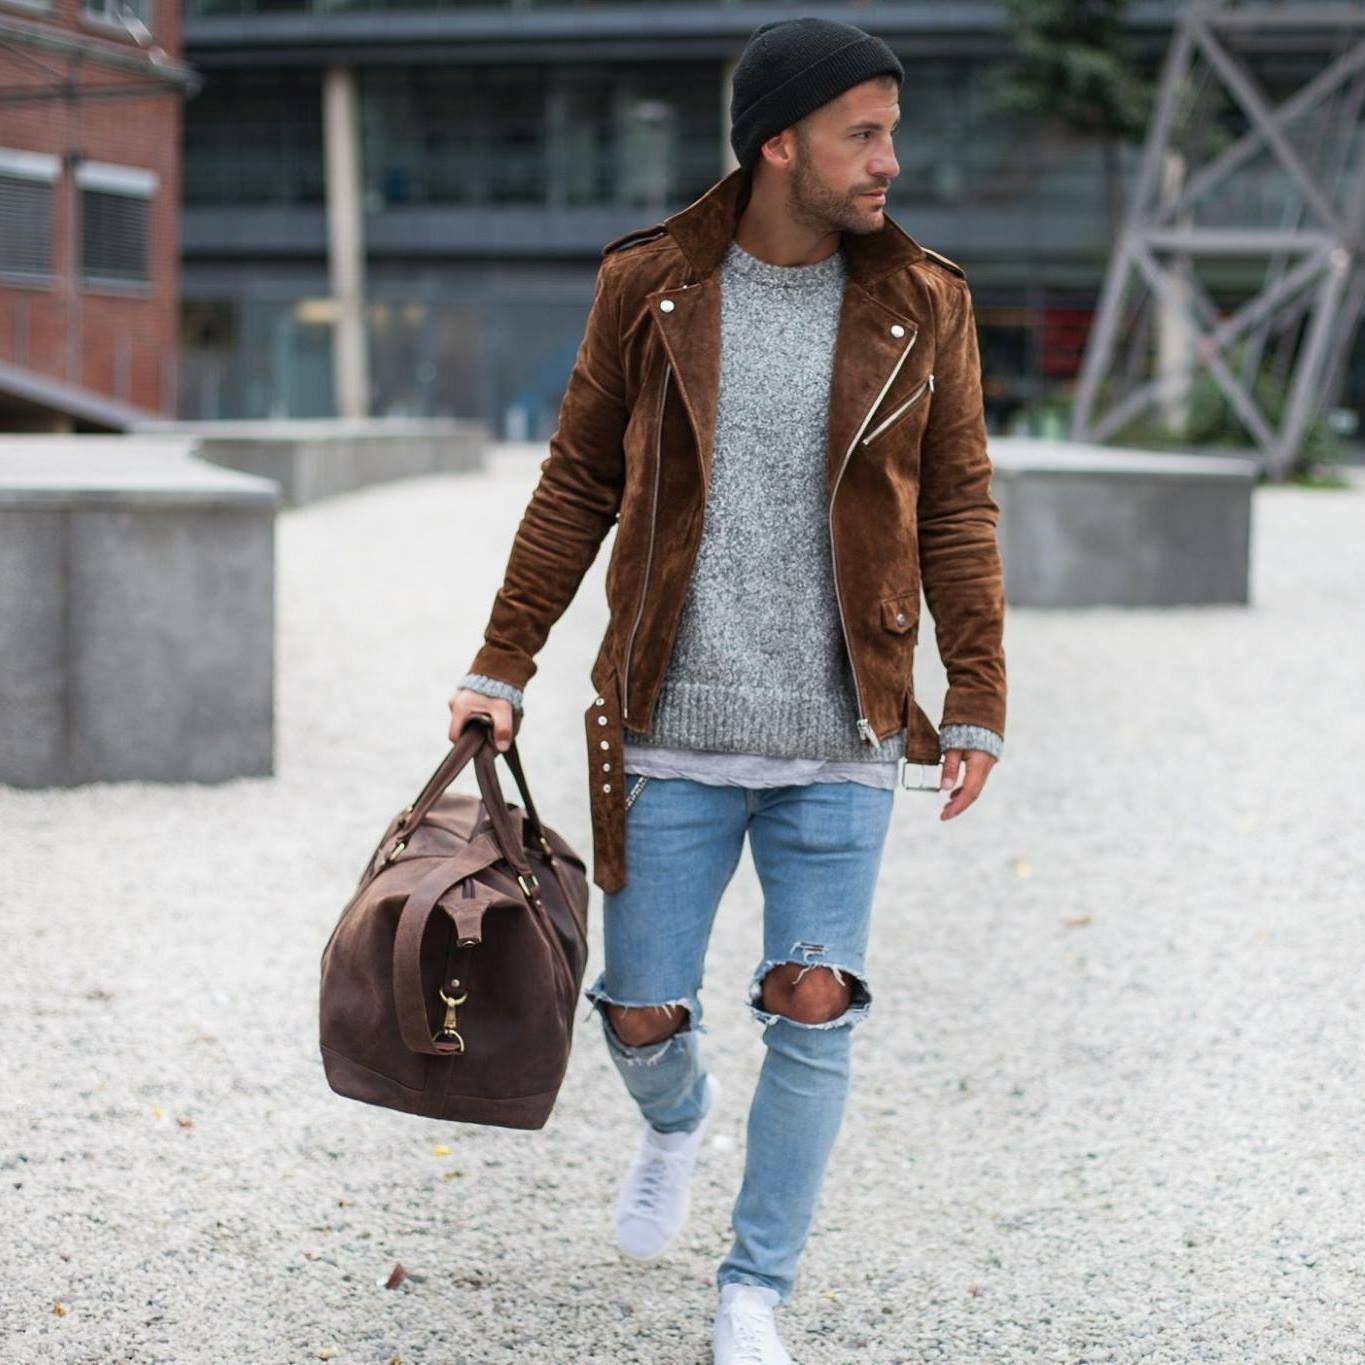 Men street style love the jacket brought to you by Tom